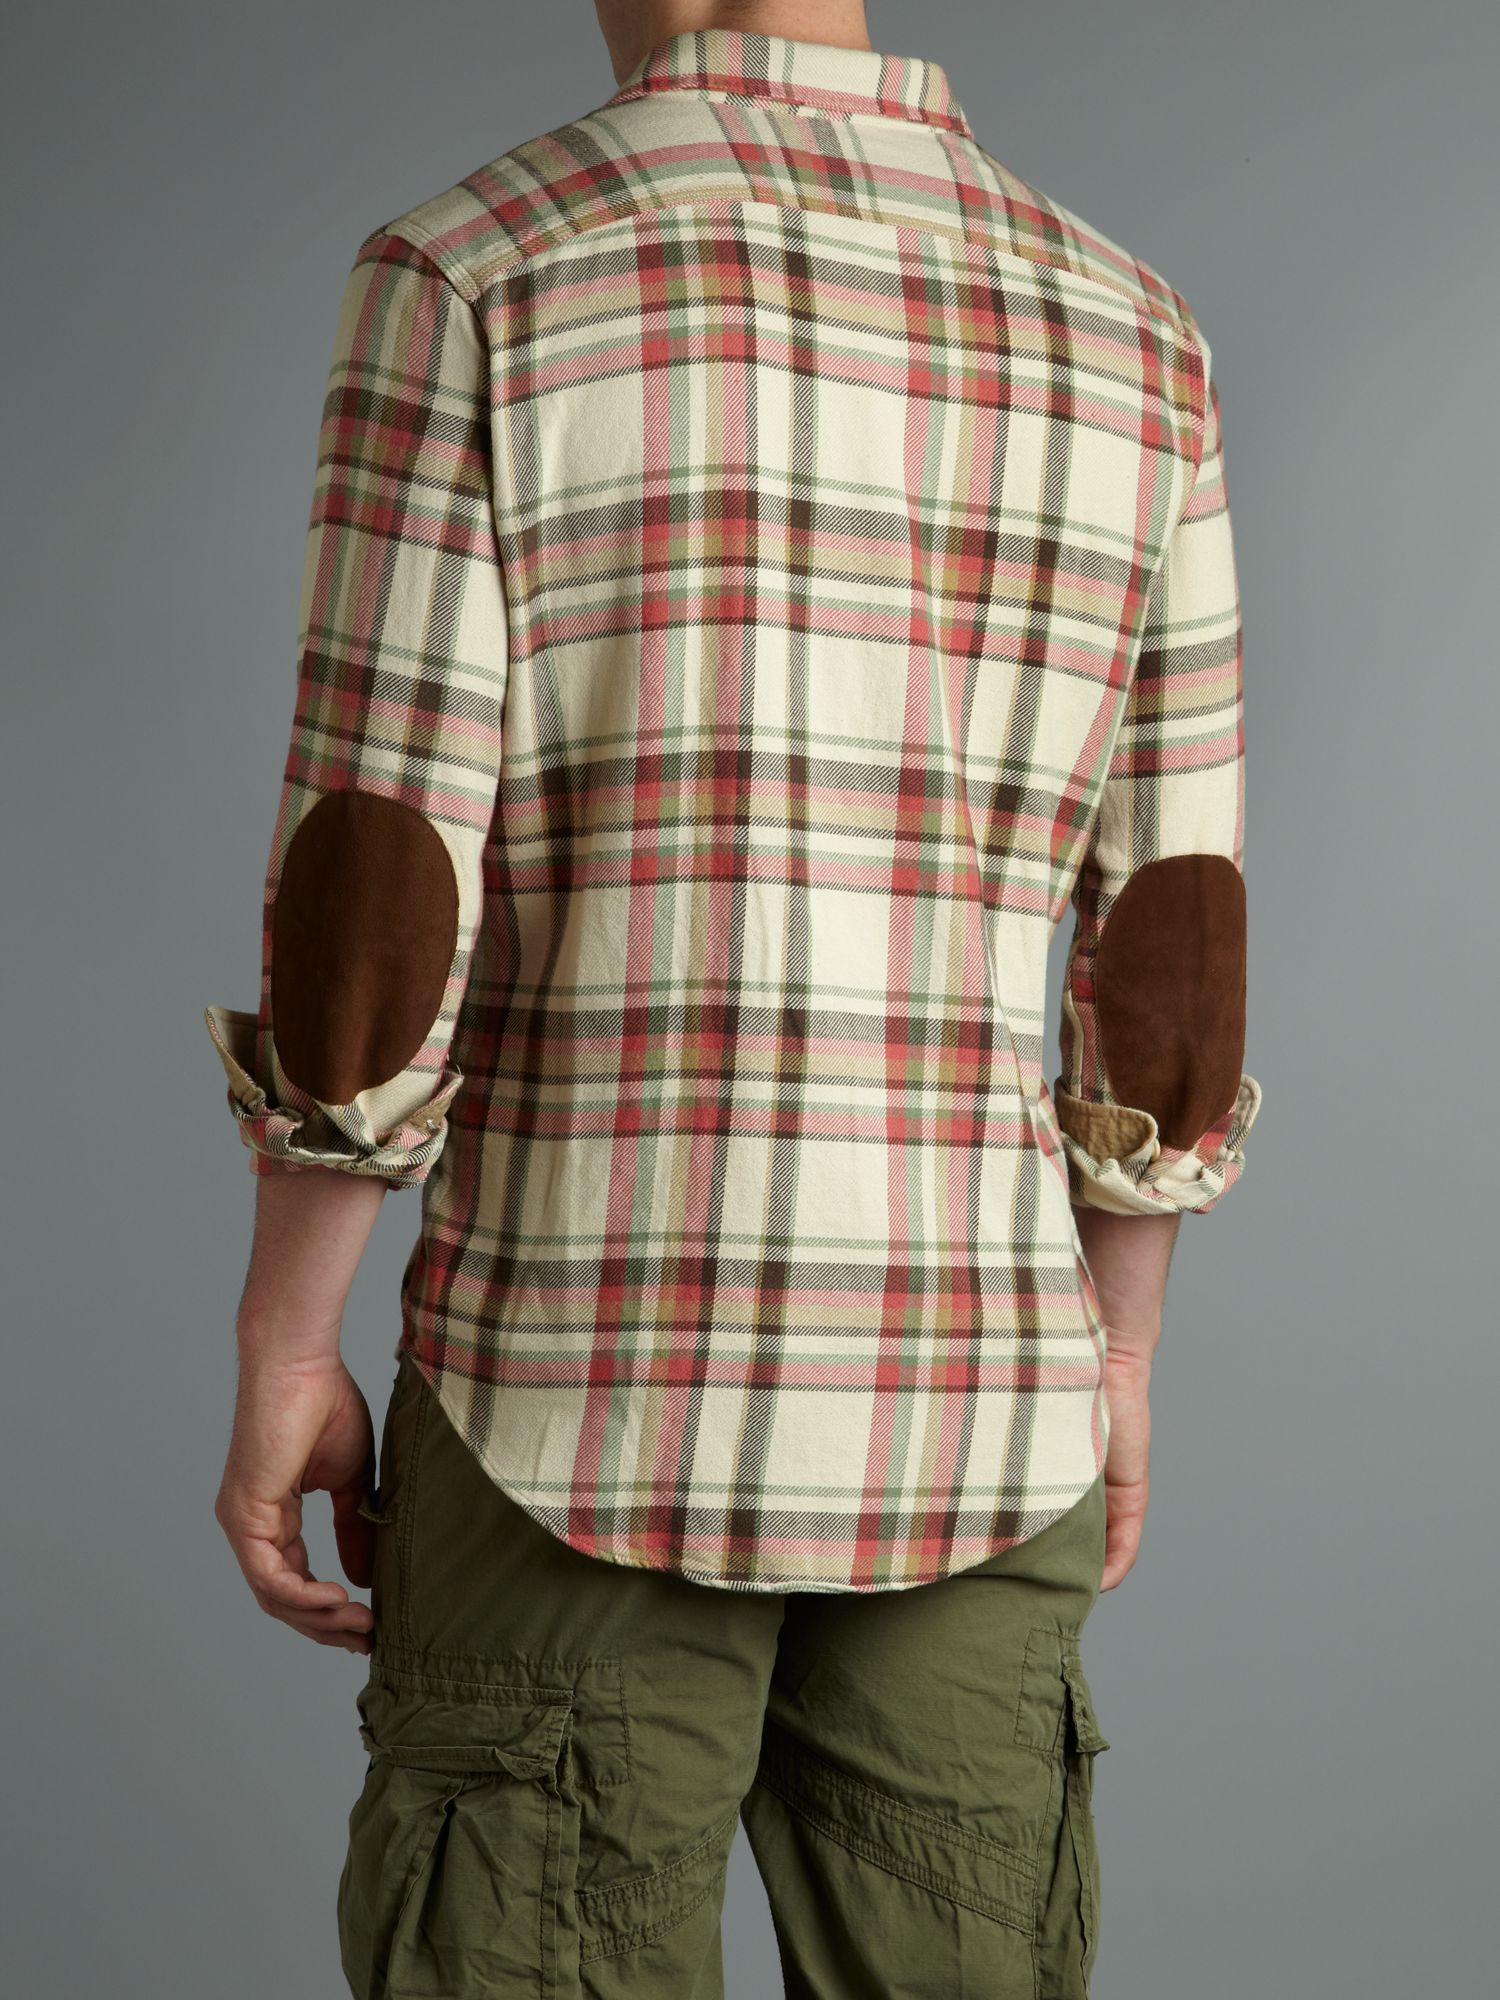 Polo ralph lauren long sleeved elbow patch plaid shirt in